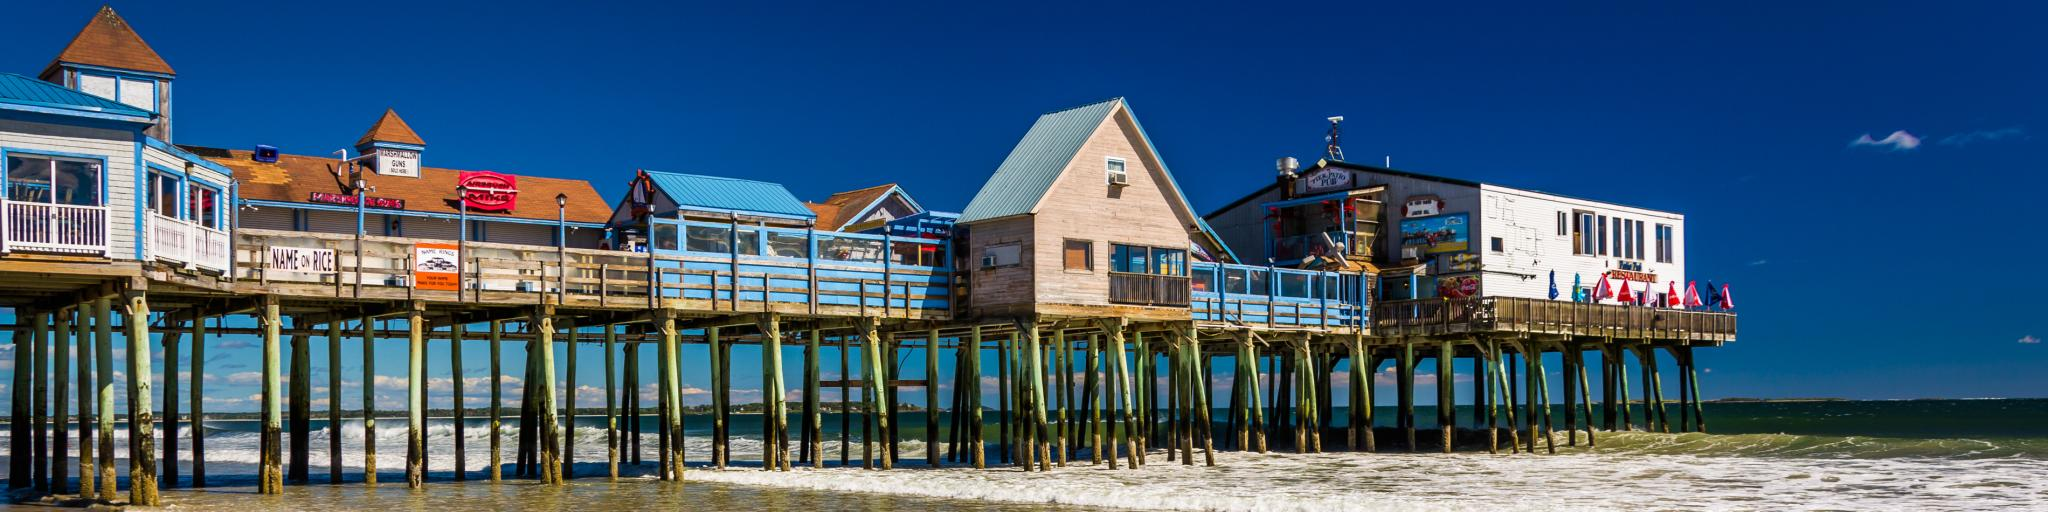 The colorful Old Orchard Beach Pier in Maine has restaurants and bars with a view.